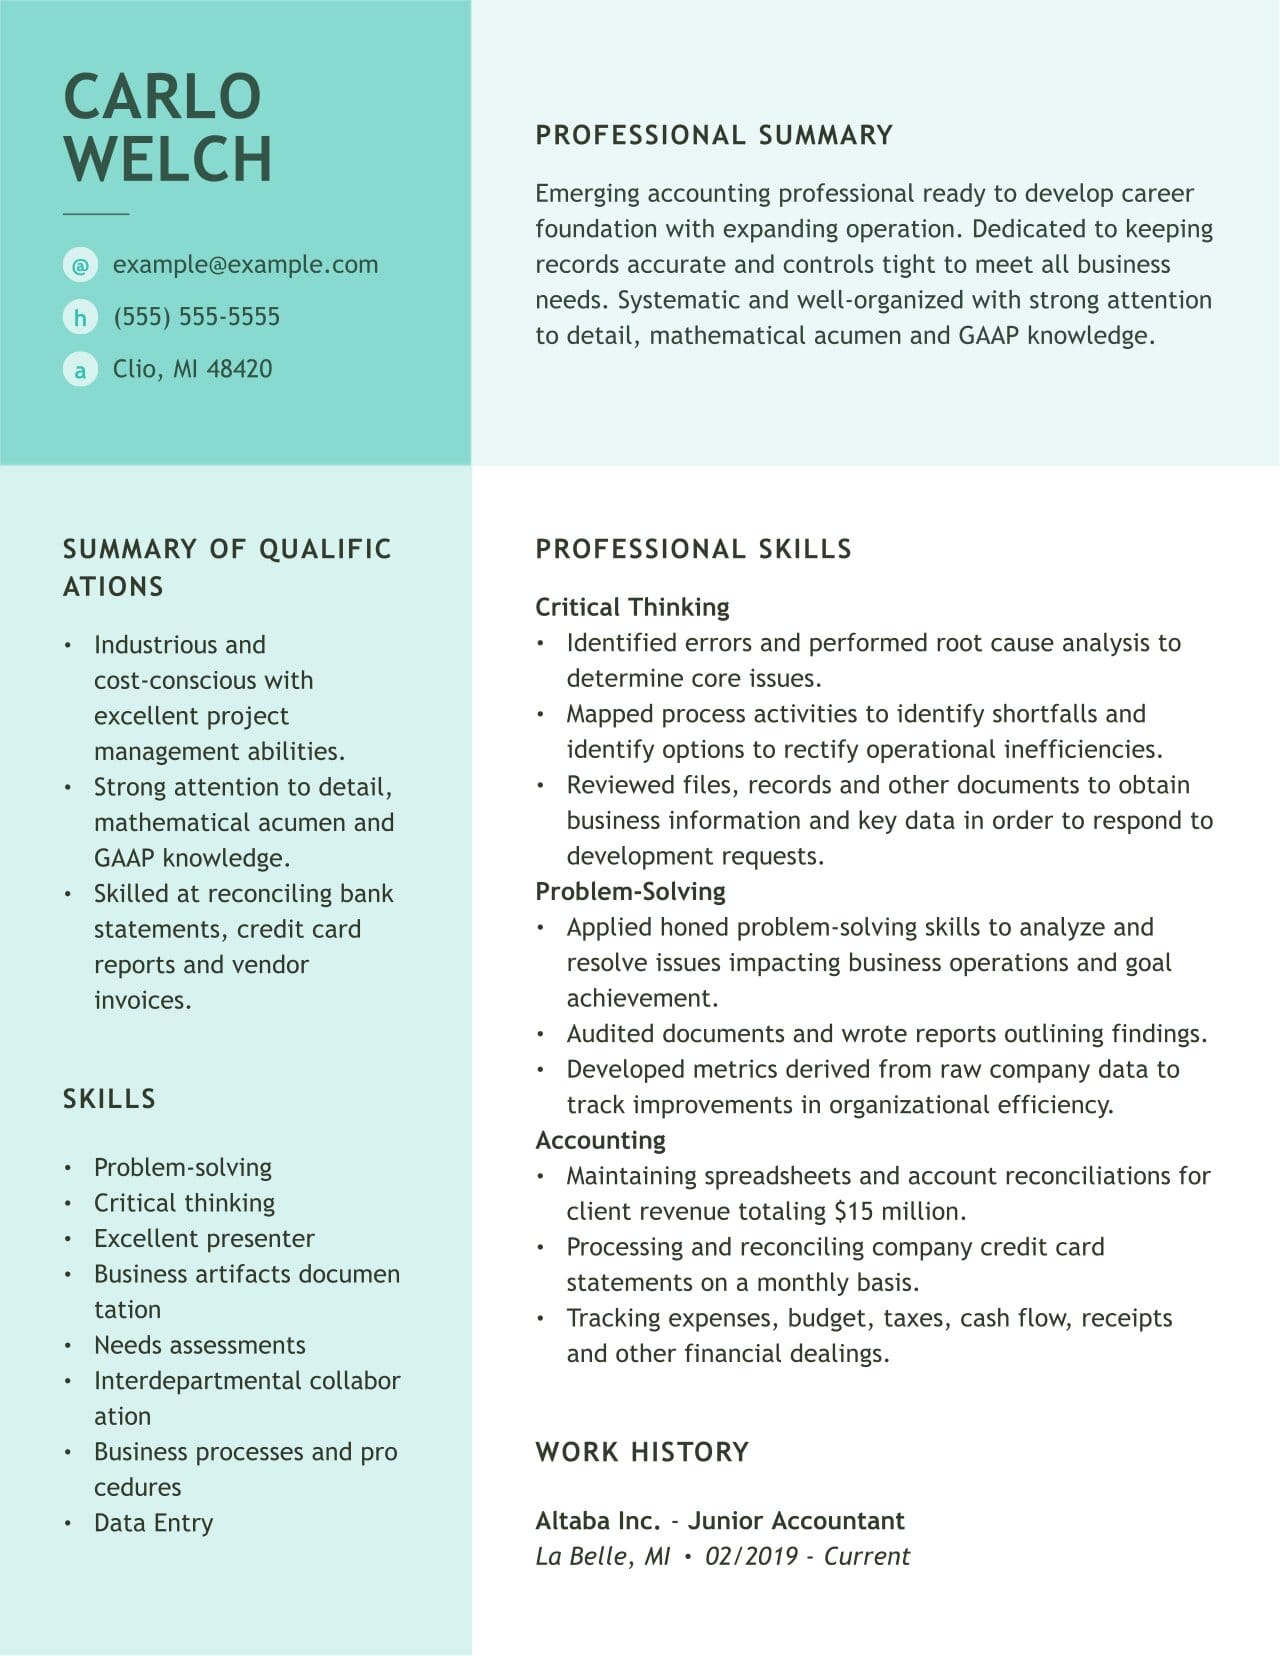 accounting resume examples and guides myperfectresume skills abilities for Resume Skills And Abilities For Accounting Resume